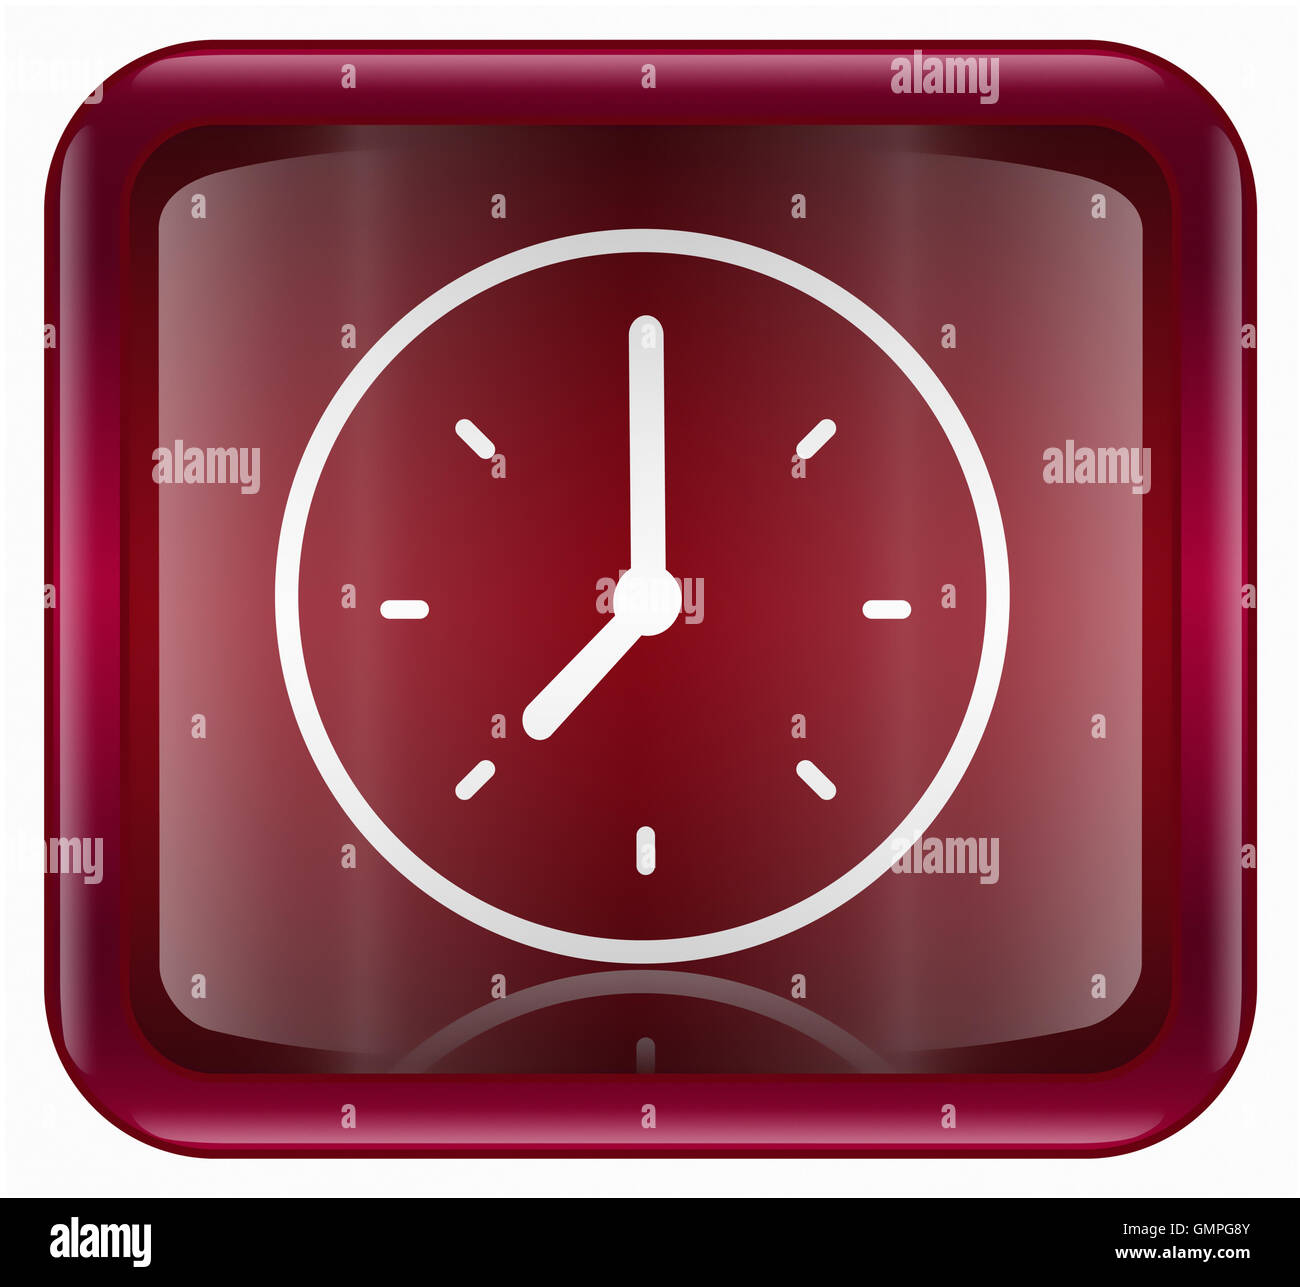 Clock icon red - Stock Image